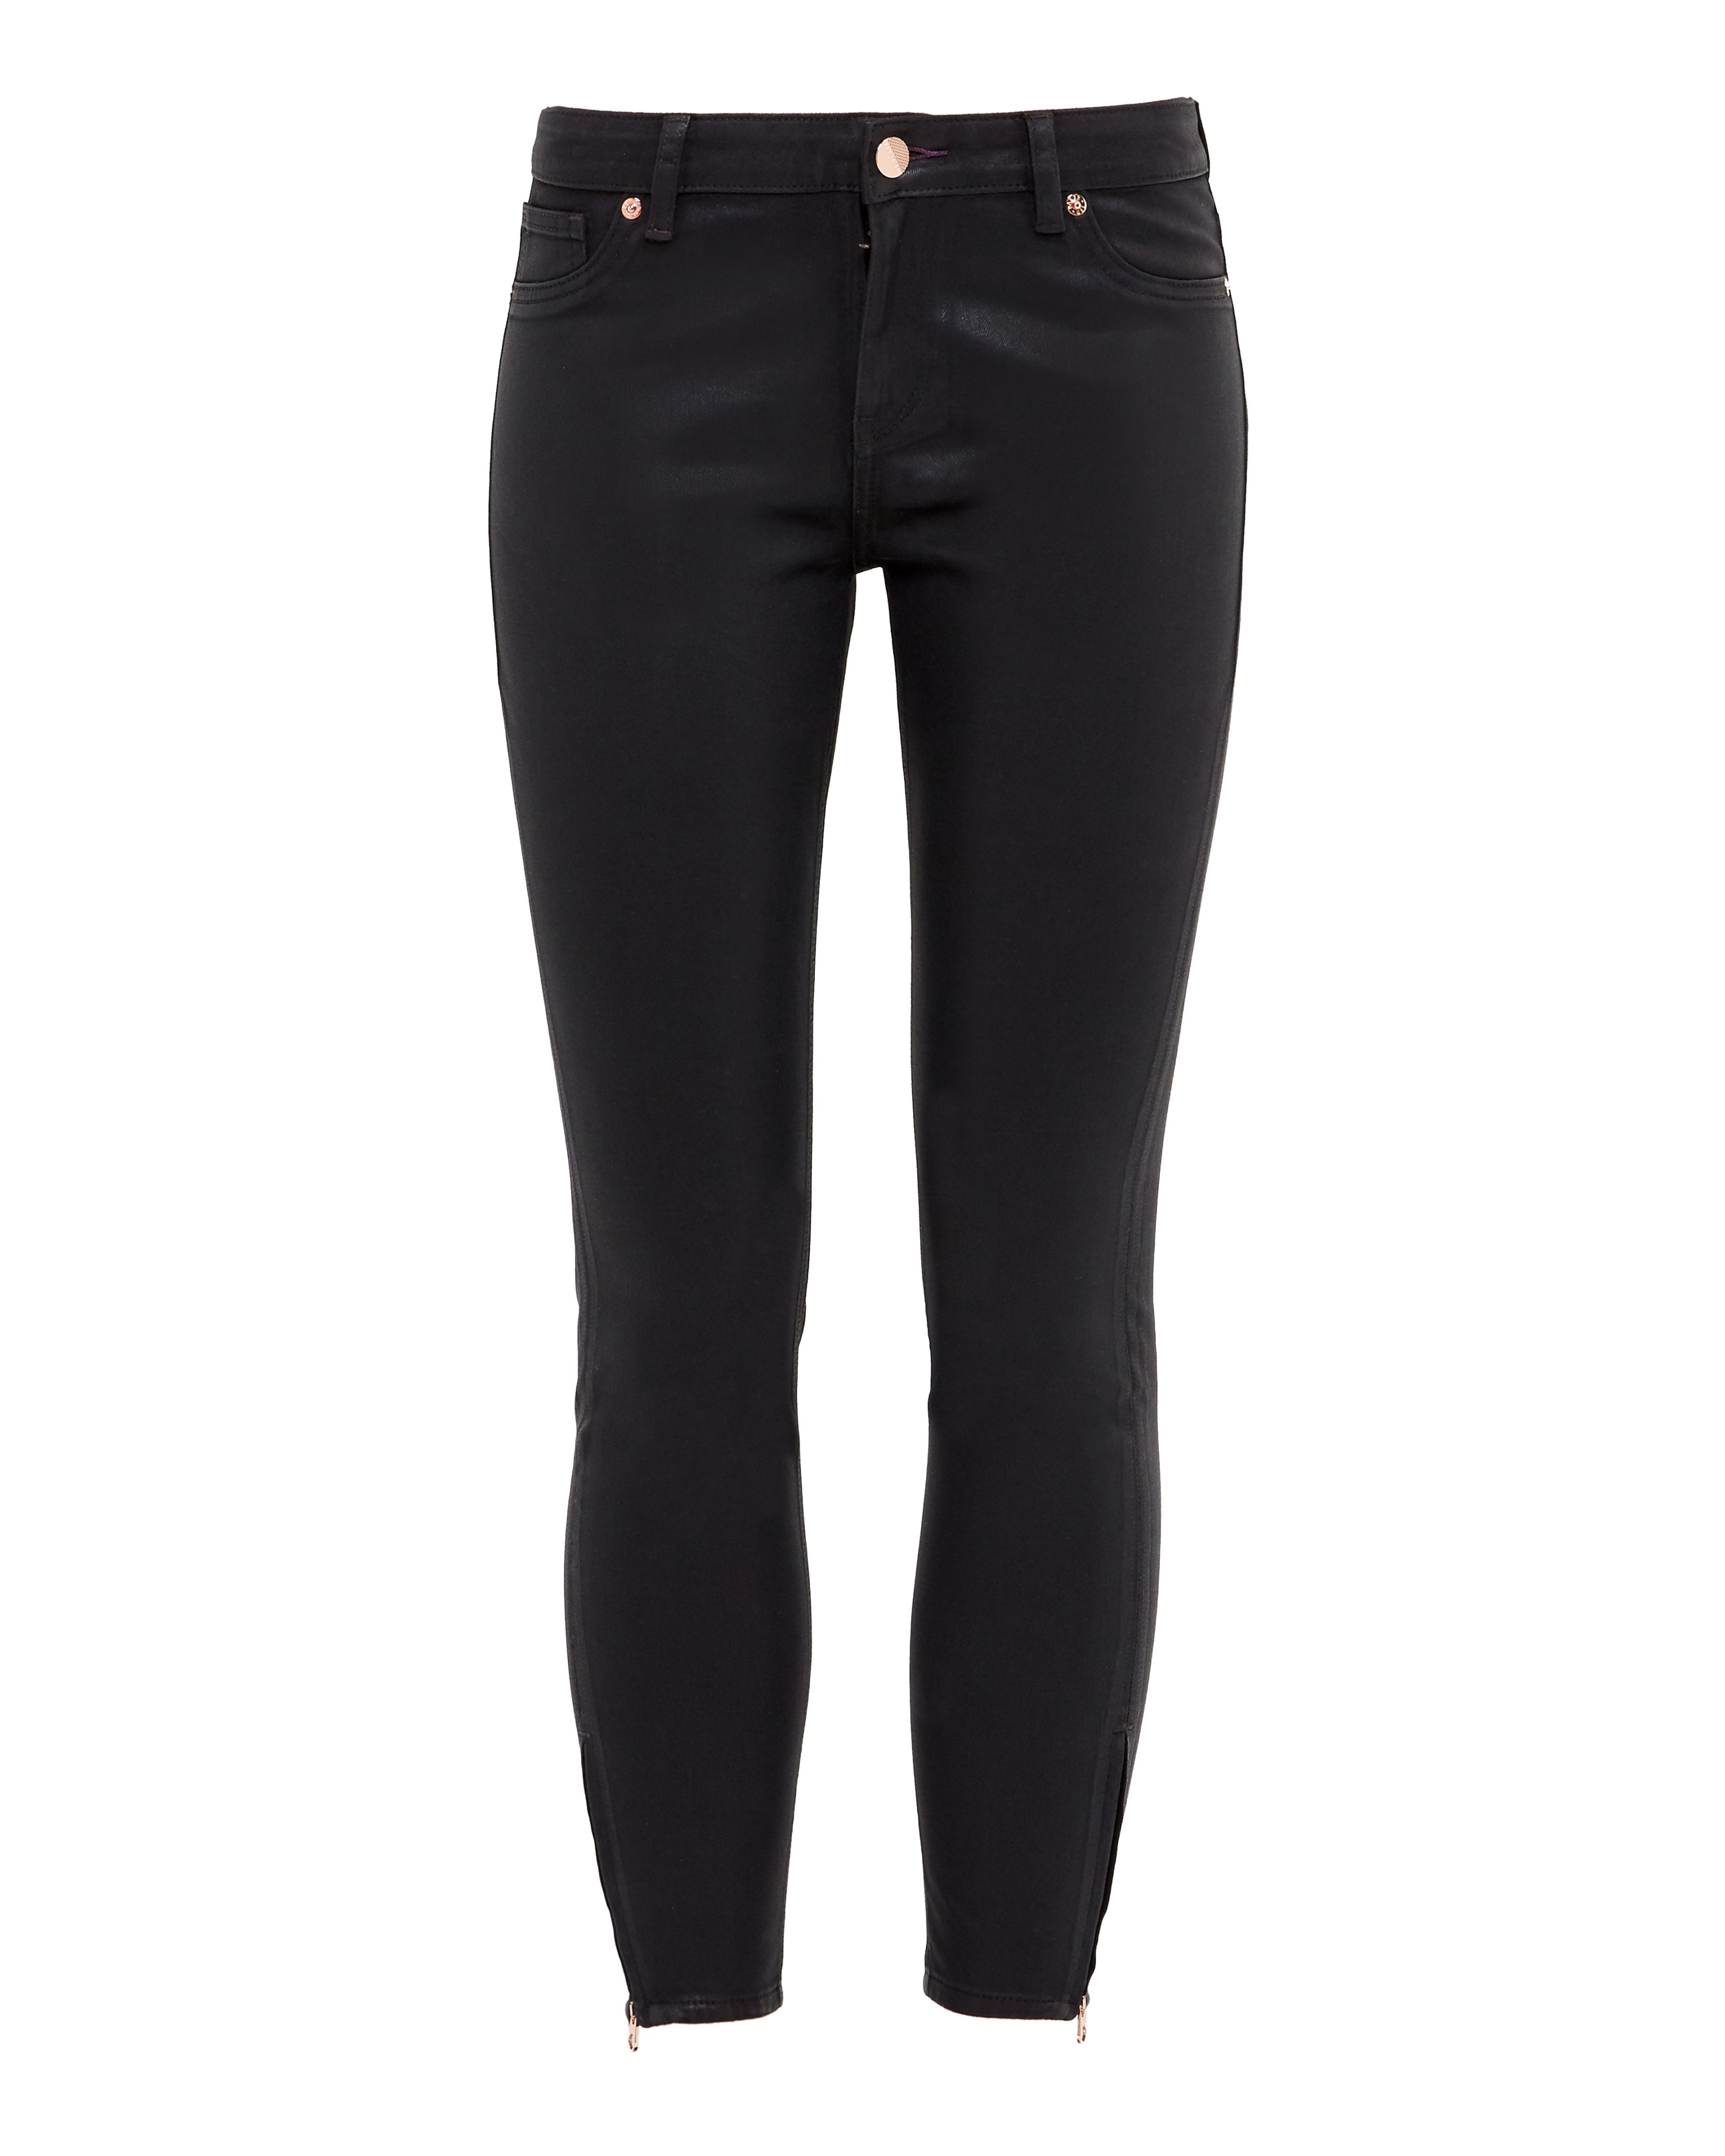 Ted Baker Annnas Wax Finish Skinny Jeans Black